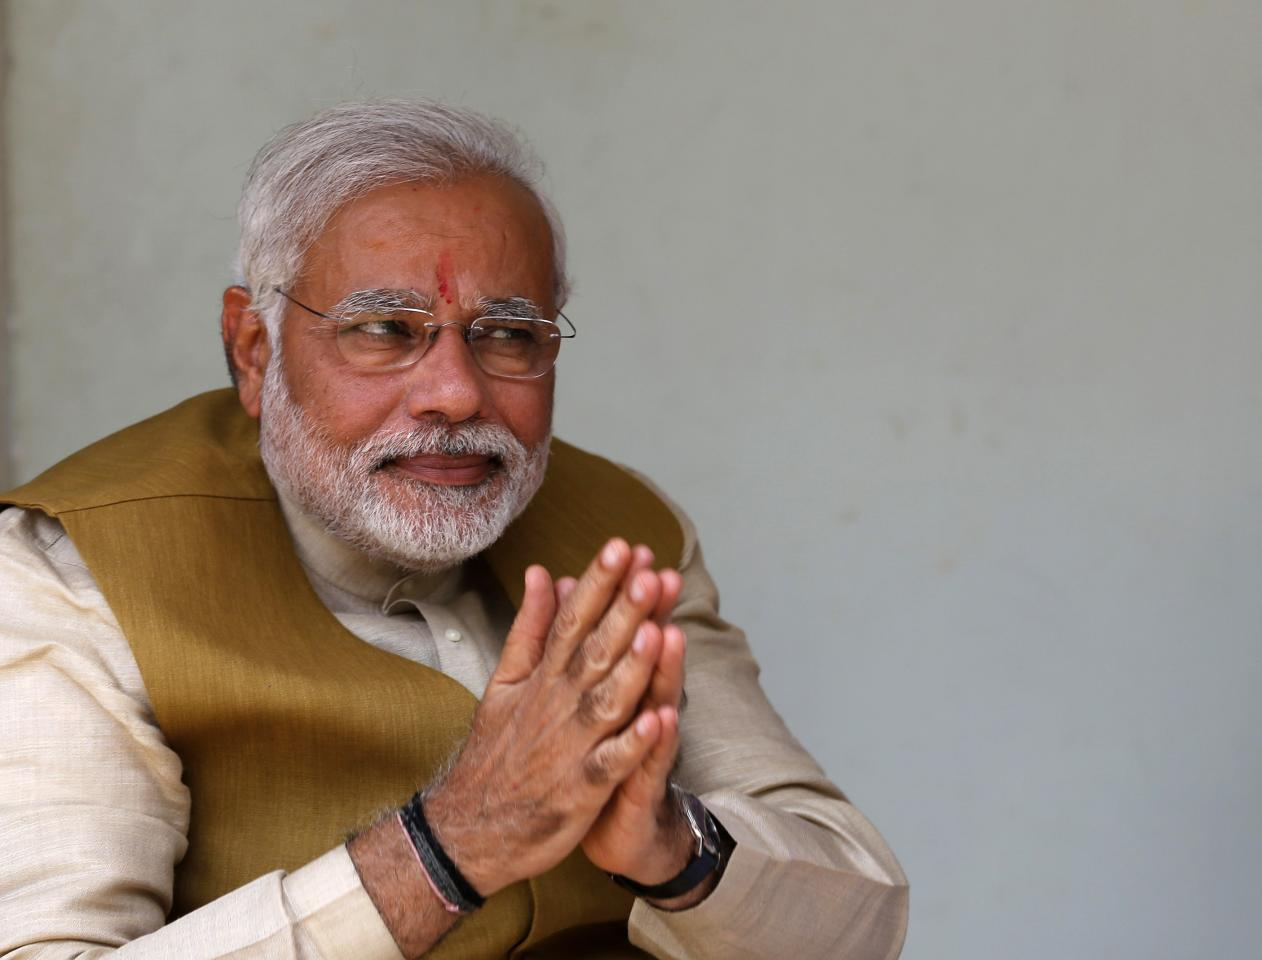 Hindu nationalist Narendra Modi, the prime ministerial candidate for India's main opposition Bharatiya Janata Party (BJP), gestures after seeking blessings from his mother Heeraben at her residence in Gandhinagar in the western Indian state of Gujarat May 16, 2014. Modi will be the next prime minister of India, with counting trends showing the pro-business Hindu nationalist and his party headed for the most resounding election victory the country has seen in 30 years. REUTERS/Amit Dave (INDIA - Tags: POLITICS ELECTIONS)